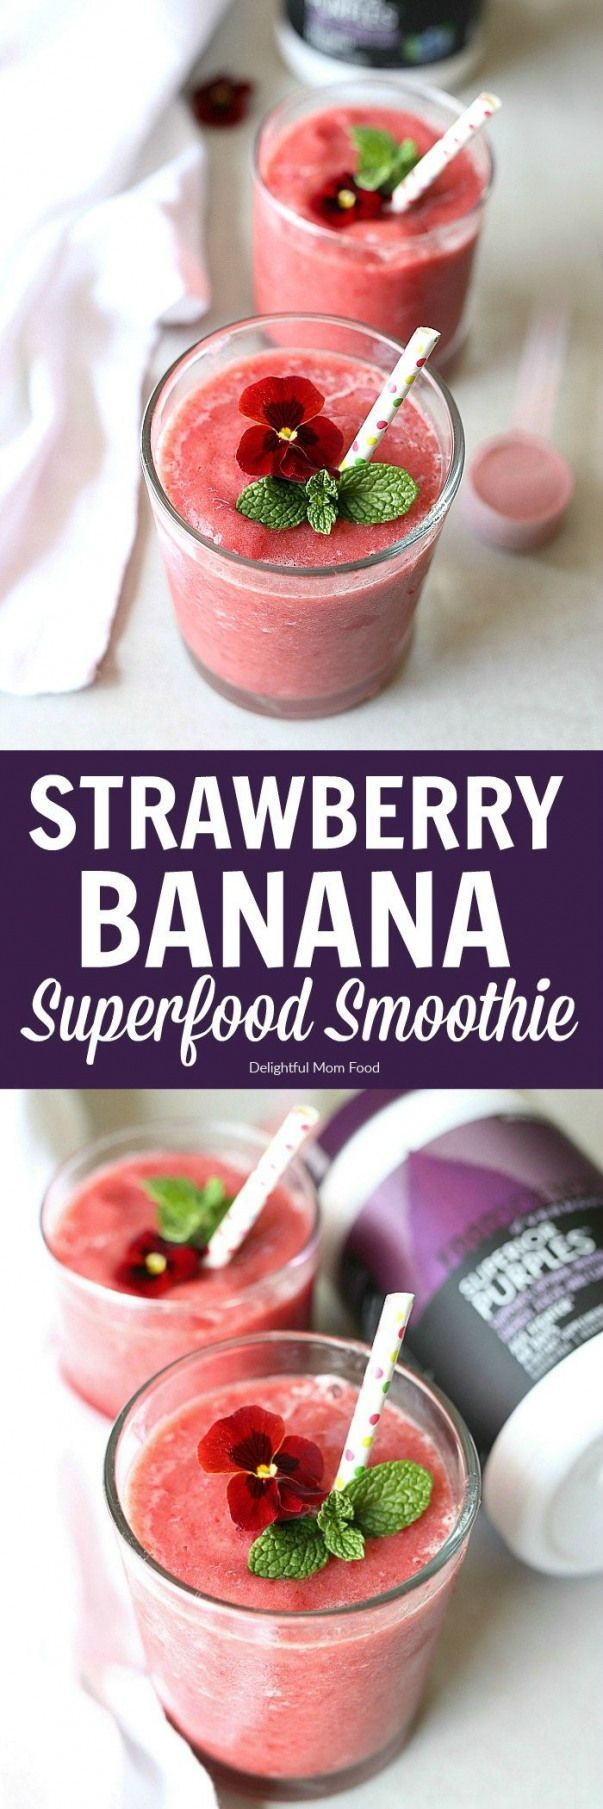 Strawberry banana smoothie recipe enriched with superfood antioxidant powder! #recipe #antioxidant #smoothie #healthy #dairyfree #livesuperior #ad #strawberry #banana | Full Printable recipe at delightfulmomfood.com #detoxsmoothie #strawberrybananasmoothie Strawberry banana smoothie recipe enriched with superfood antioxidant powder! #recipe #antioxidant #smoothie #healthy #dairyfree #livesuperior #ad #strawberry #banana | Full Printable recipe at delightfulmomfood.com #detoxsmoothie #strawberrybananasmoothie